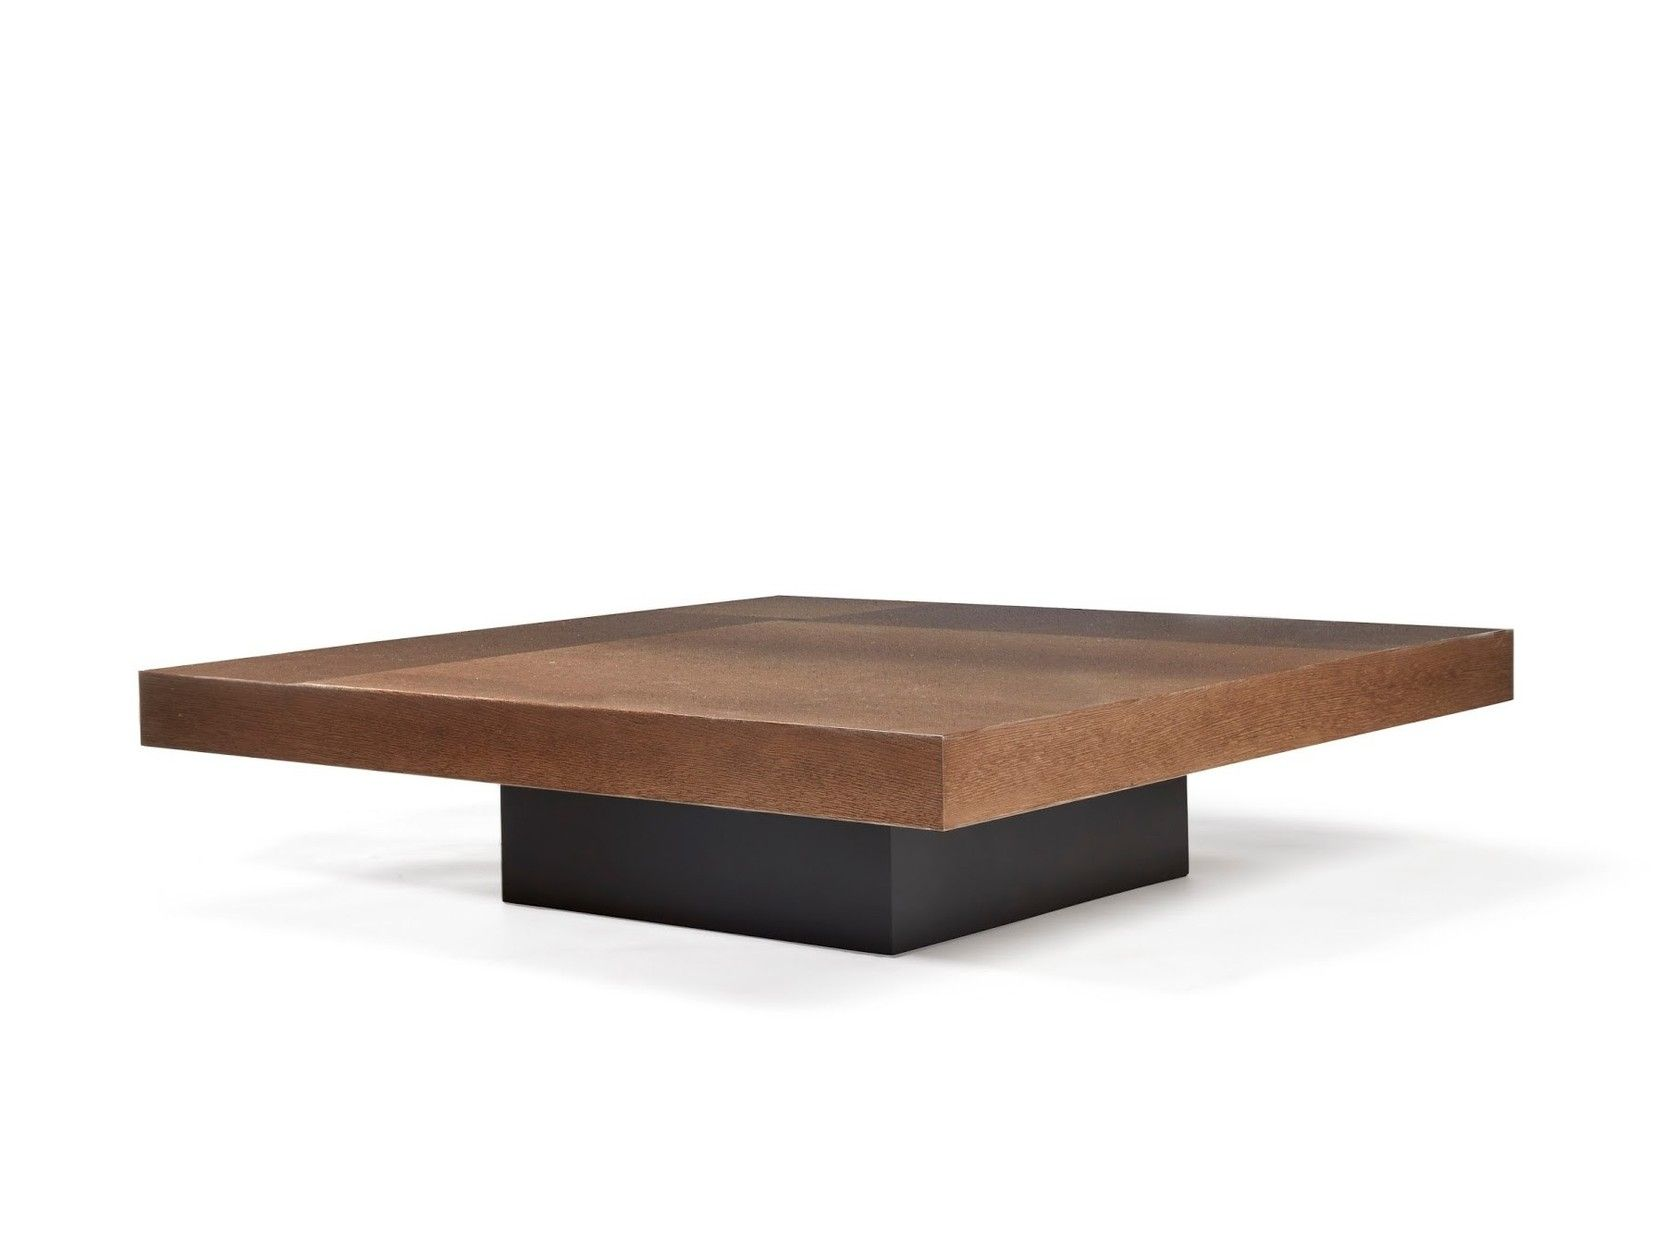 Square Wooden Coffee Table For Living Room Lausanne By Hugues Chevalier Square Wooden Coffee Table Coffee Table Wooden Coffee Table [ 1260 x 1678 Pixel ]